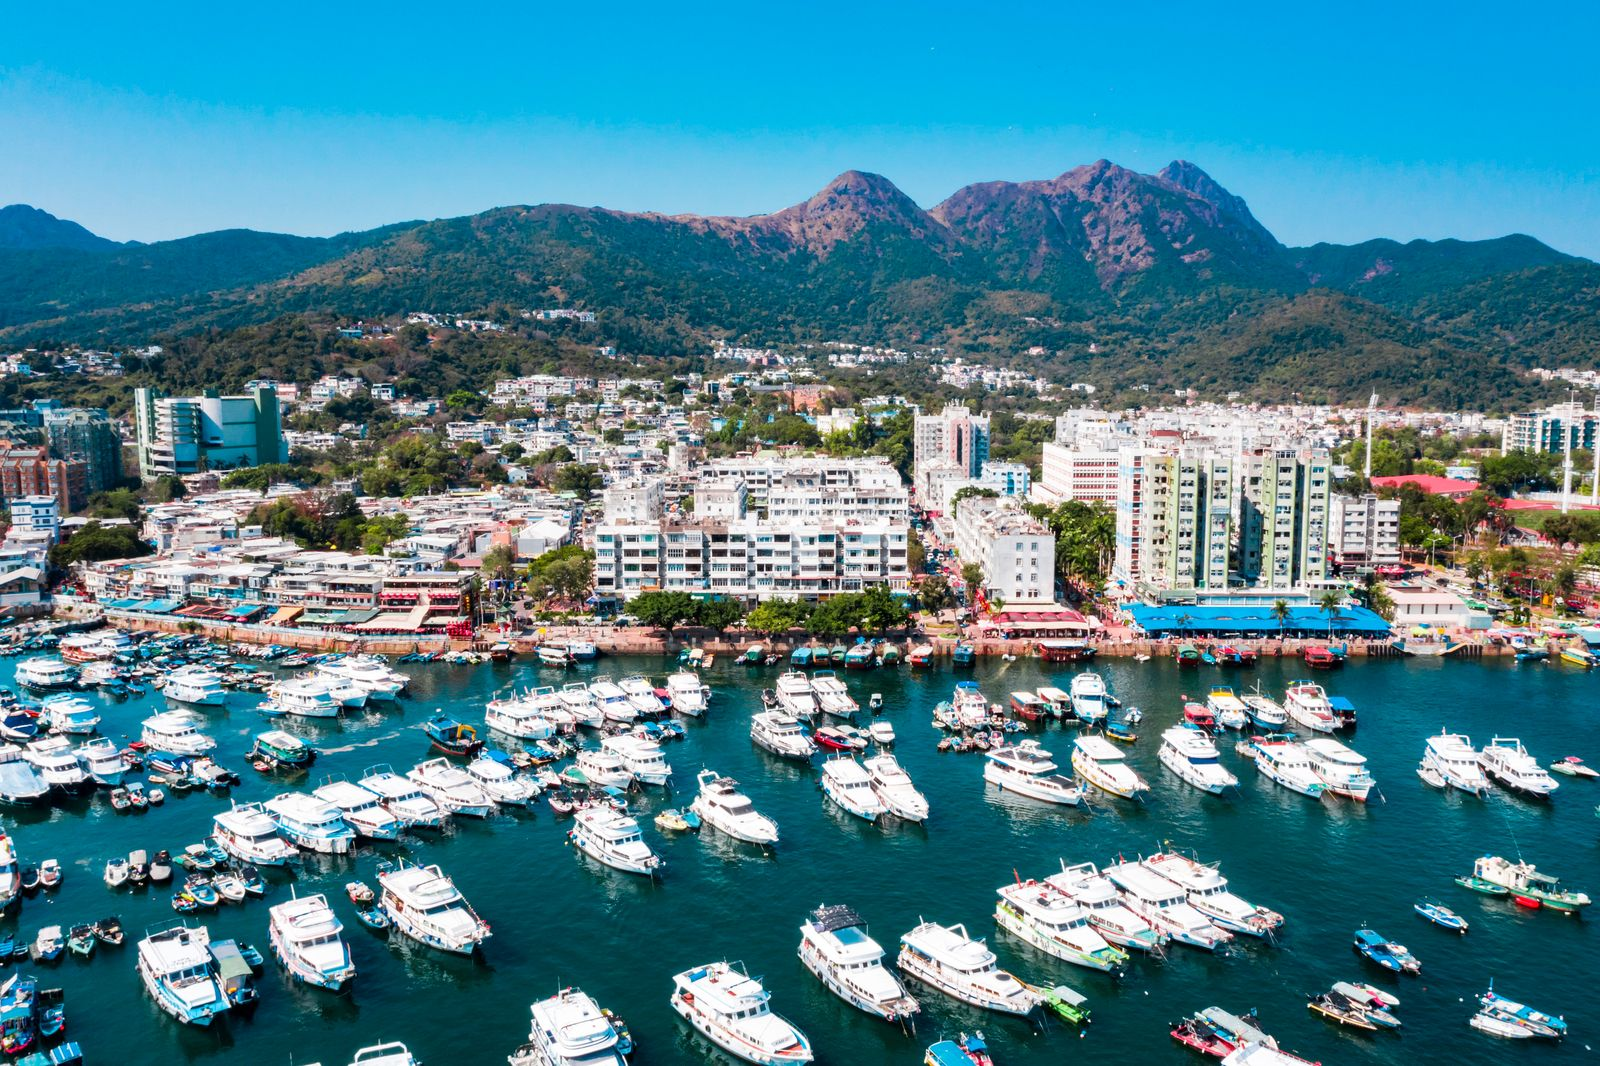 Aerial view of Hong Kong Sai Kung District from drone